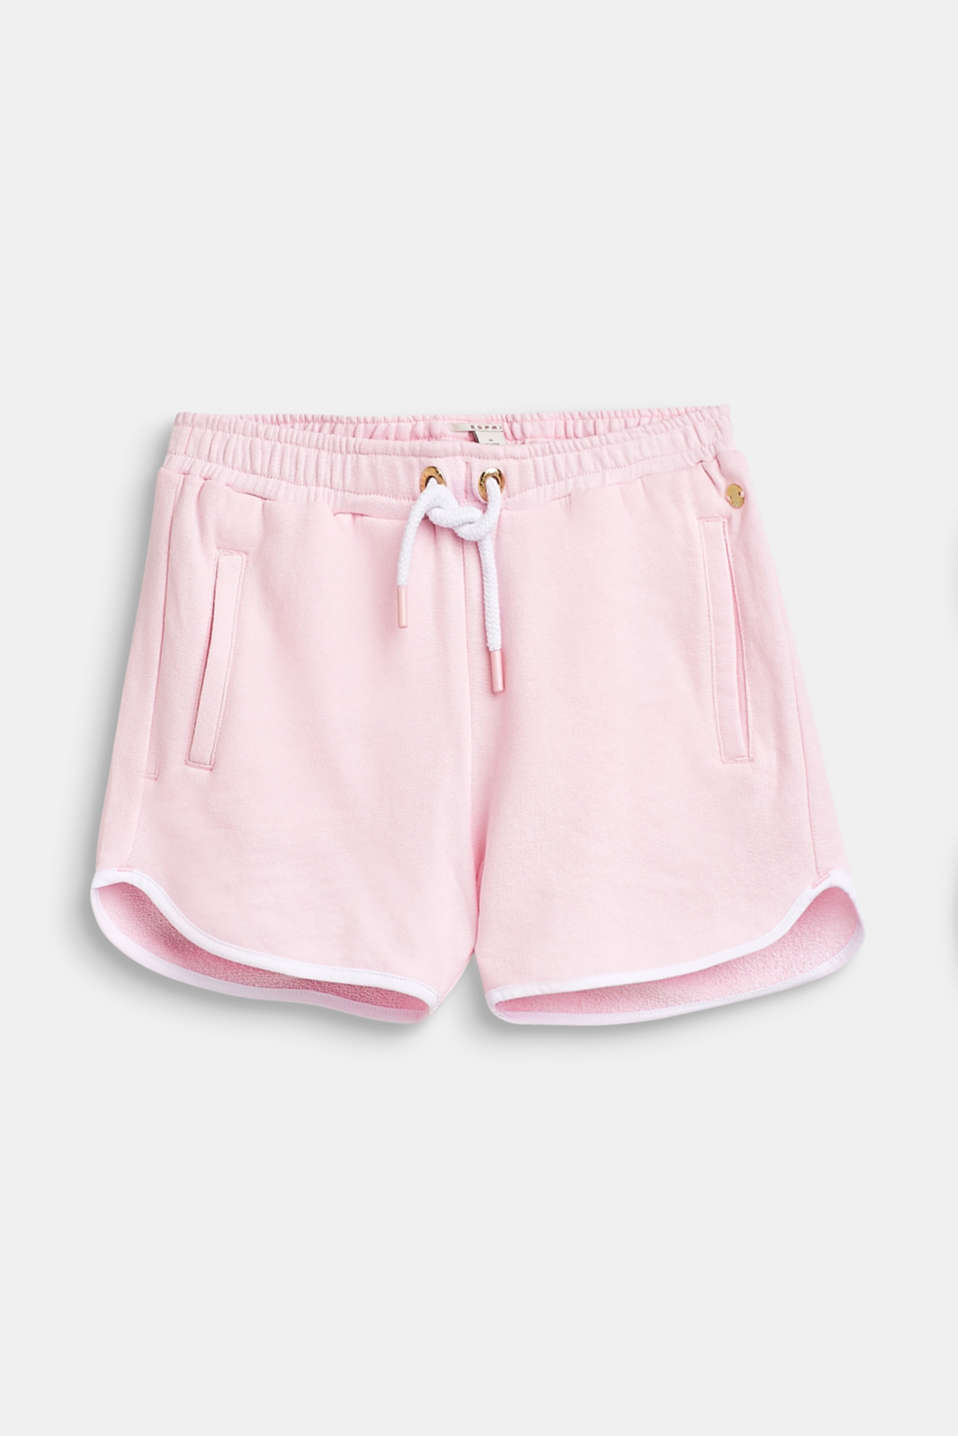 Sweatshirt shorts with piping, 100% cotton, LCBLUSH, detail image number 0